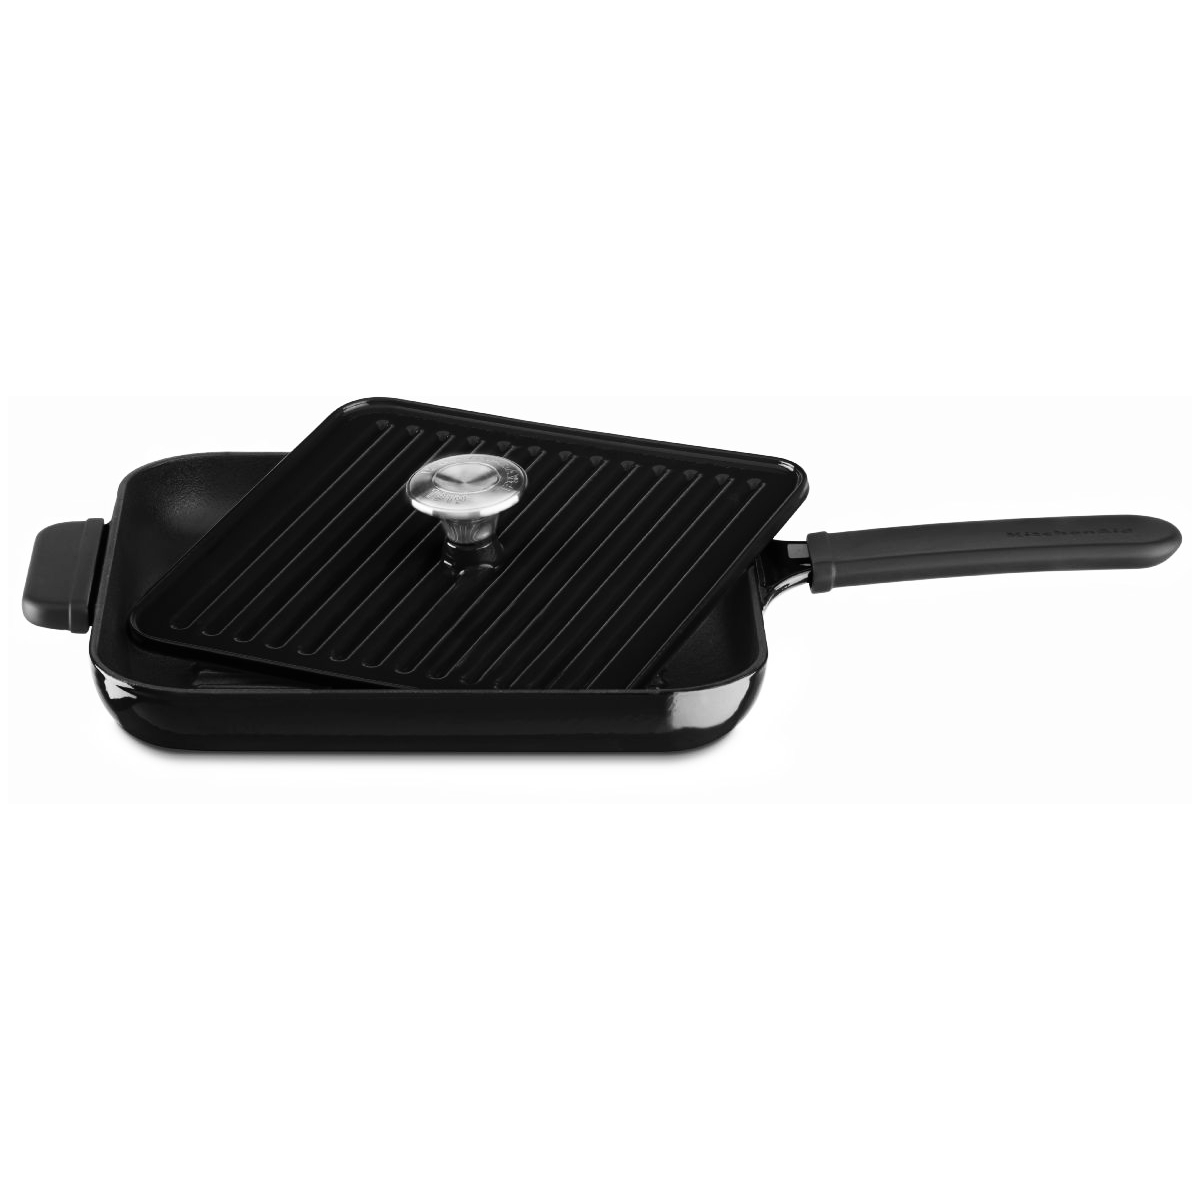 Cast Iron Grill and Panini Press